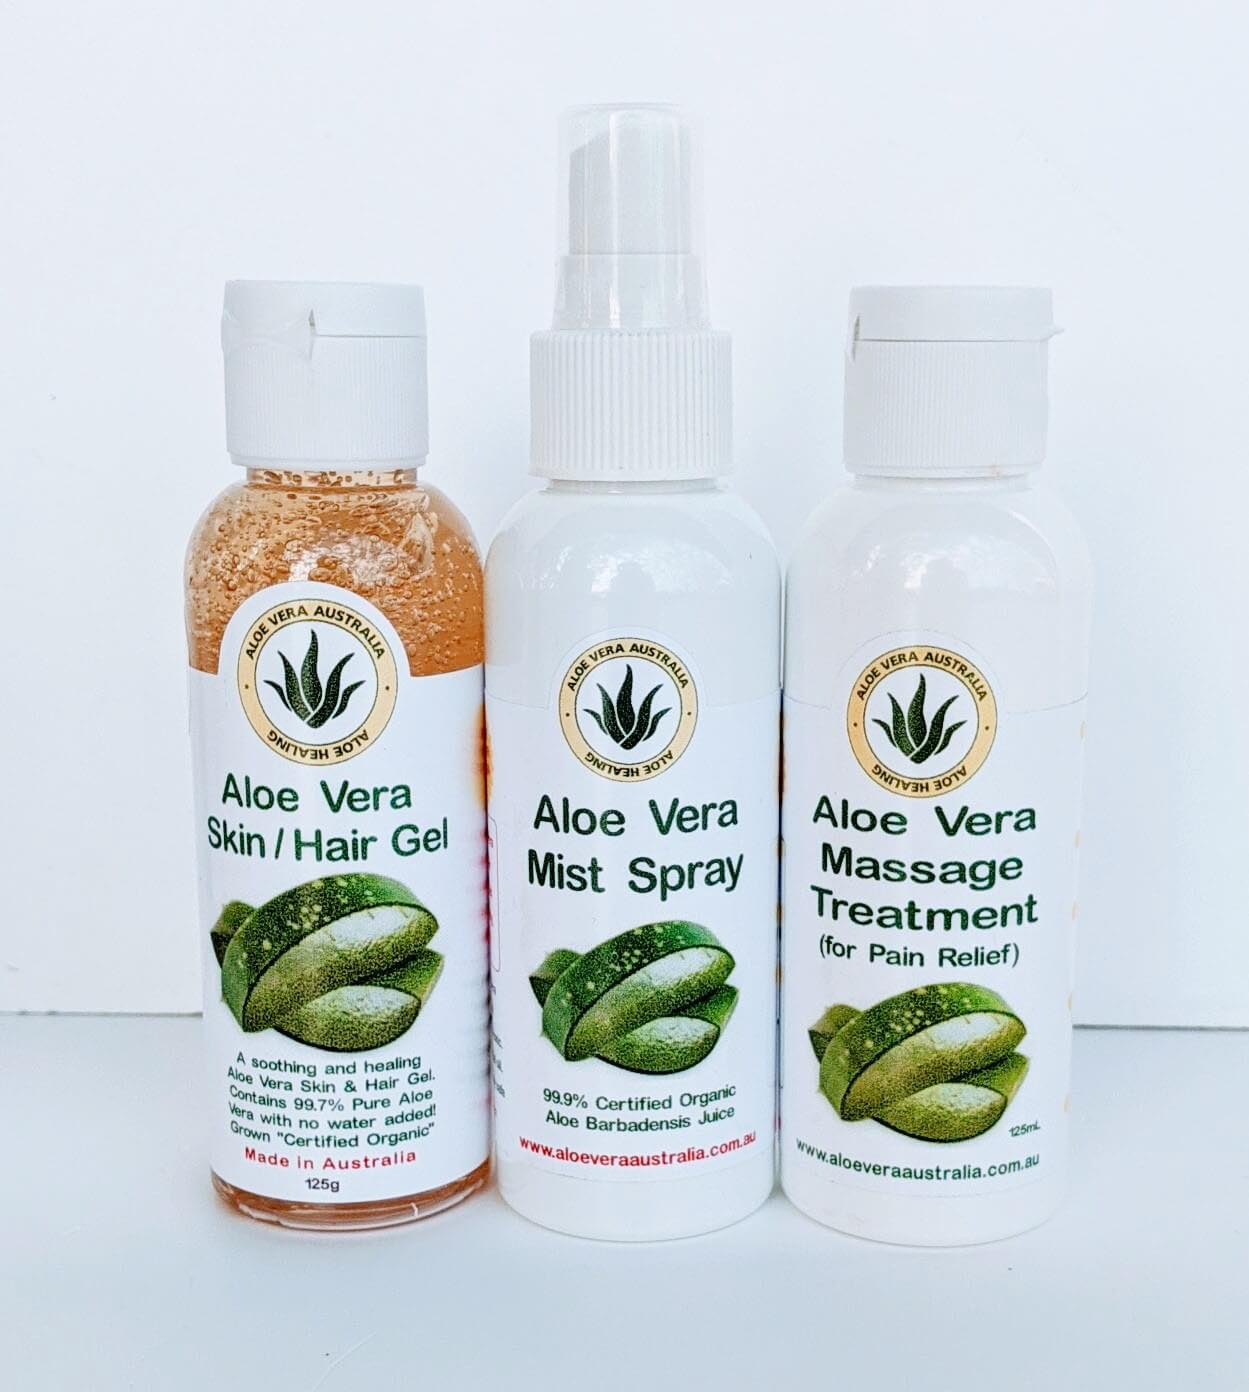 Aloe Skin Hair Gel – Aloe Mist Spray – Aloe Massage Treatment